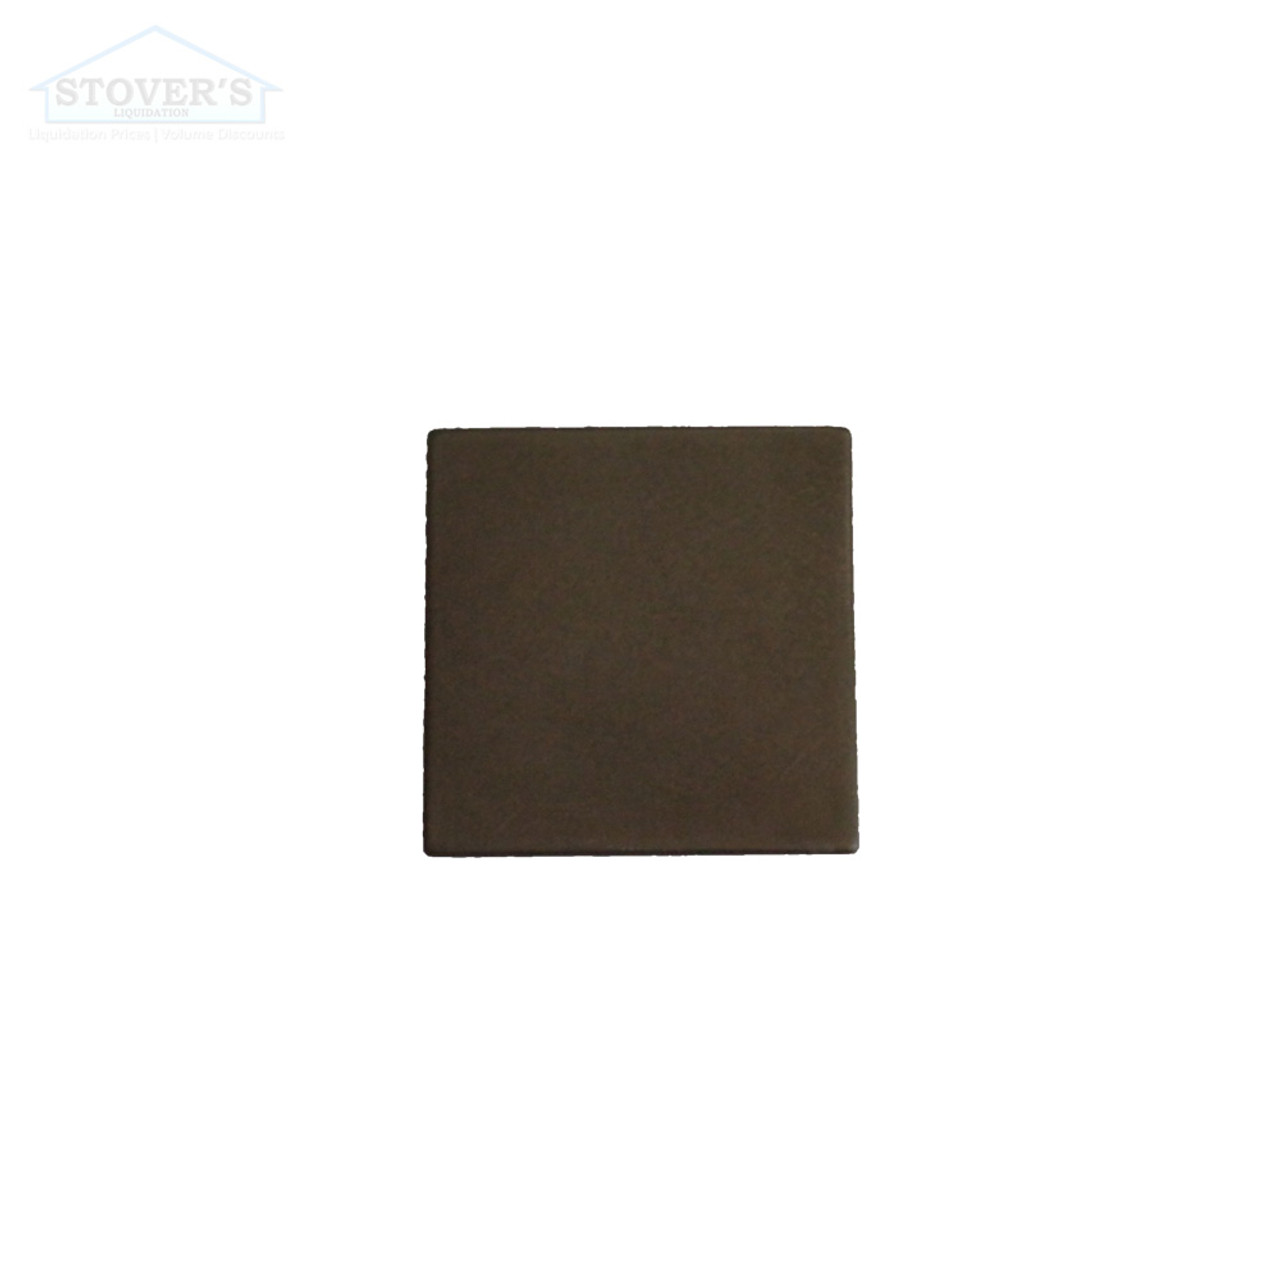 4.25x4.25 Deco | Metal Look Decos | Field Smooth VIC Bronze BSAT | TILE363028003